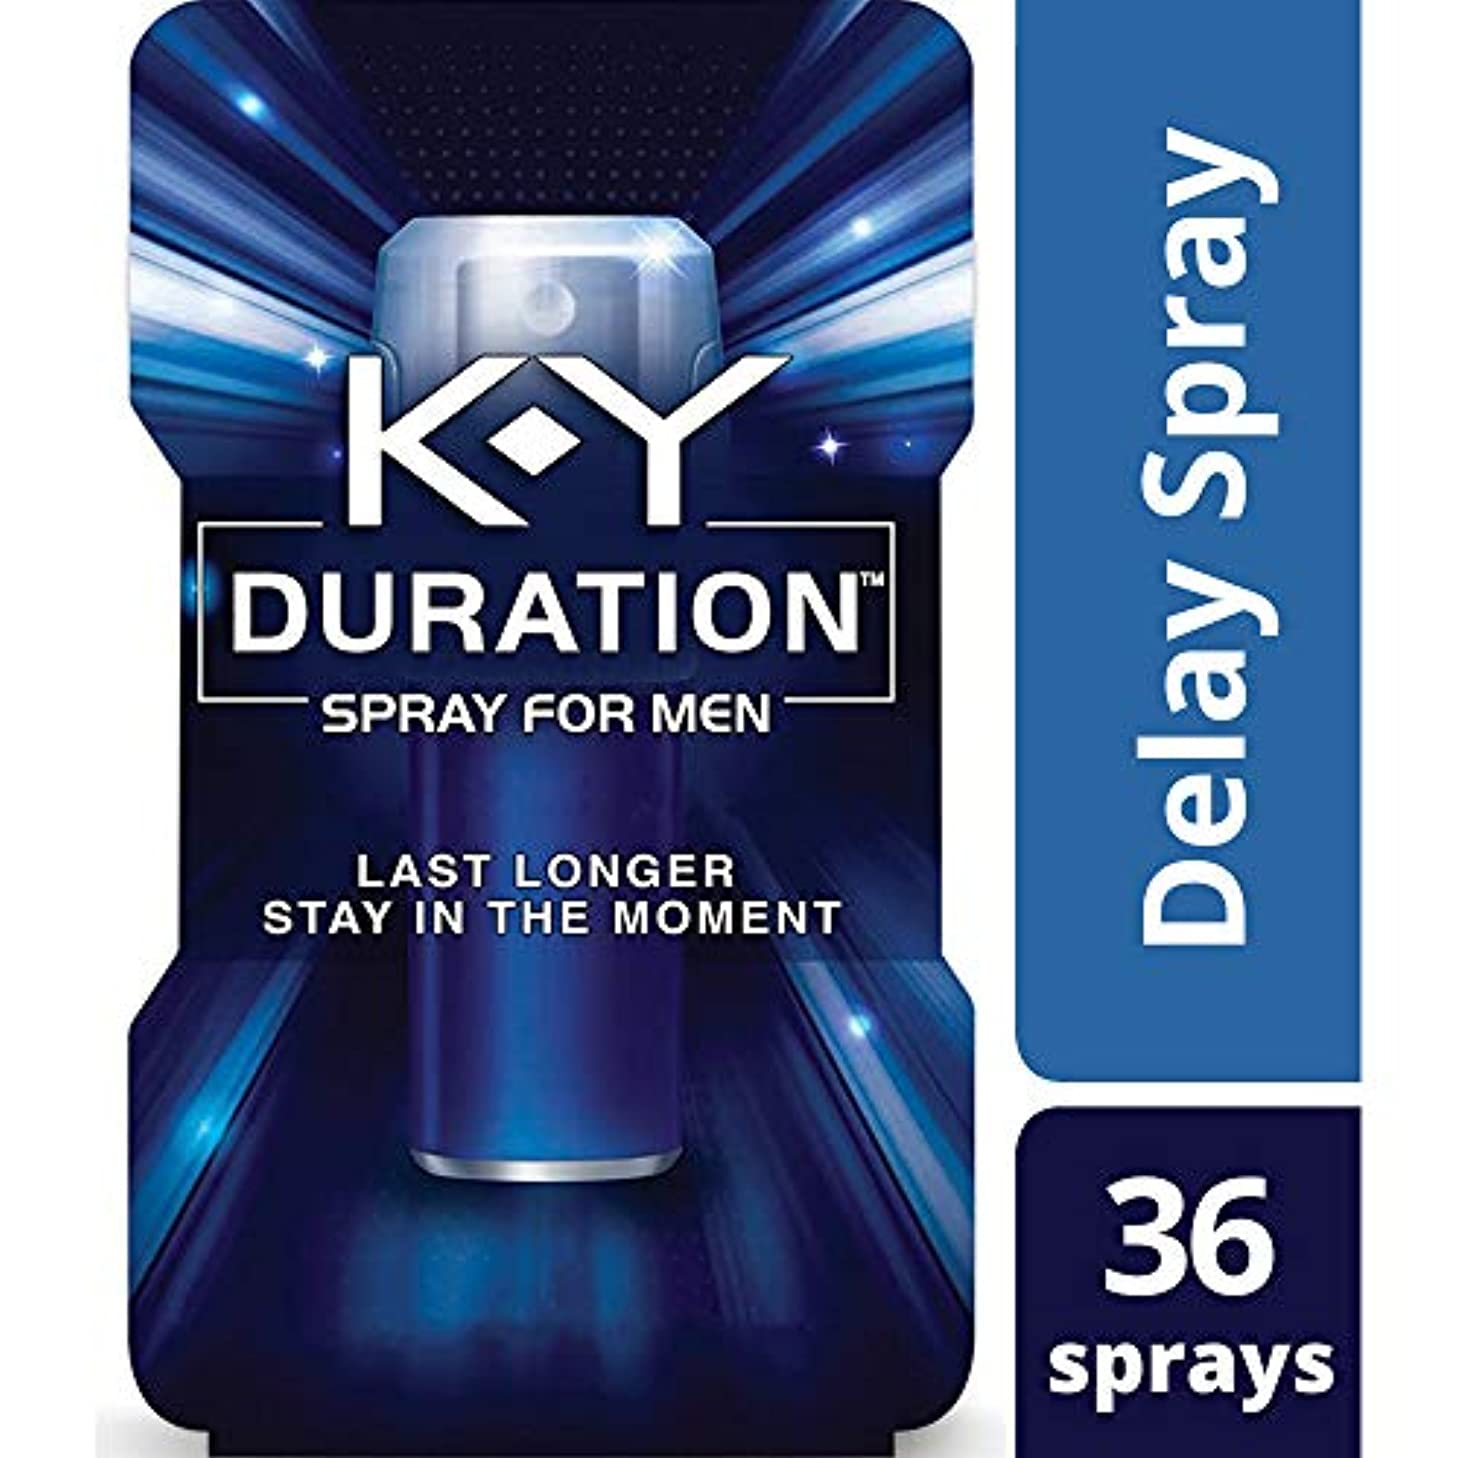 Duration Spray for Men, ?K-Y - Male Genital Desensitizer Spray to last longer, 0.16 fl Oz., ?36 Sprays/0.16 Made With Delay Lube for Men To Help Men Last Longer In Bed